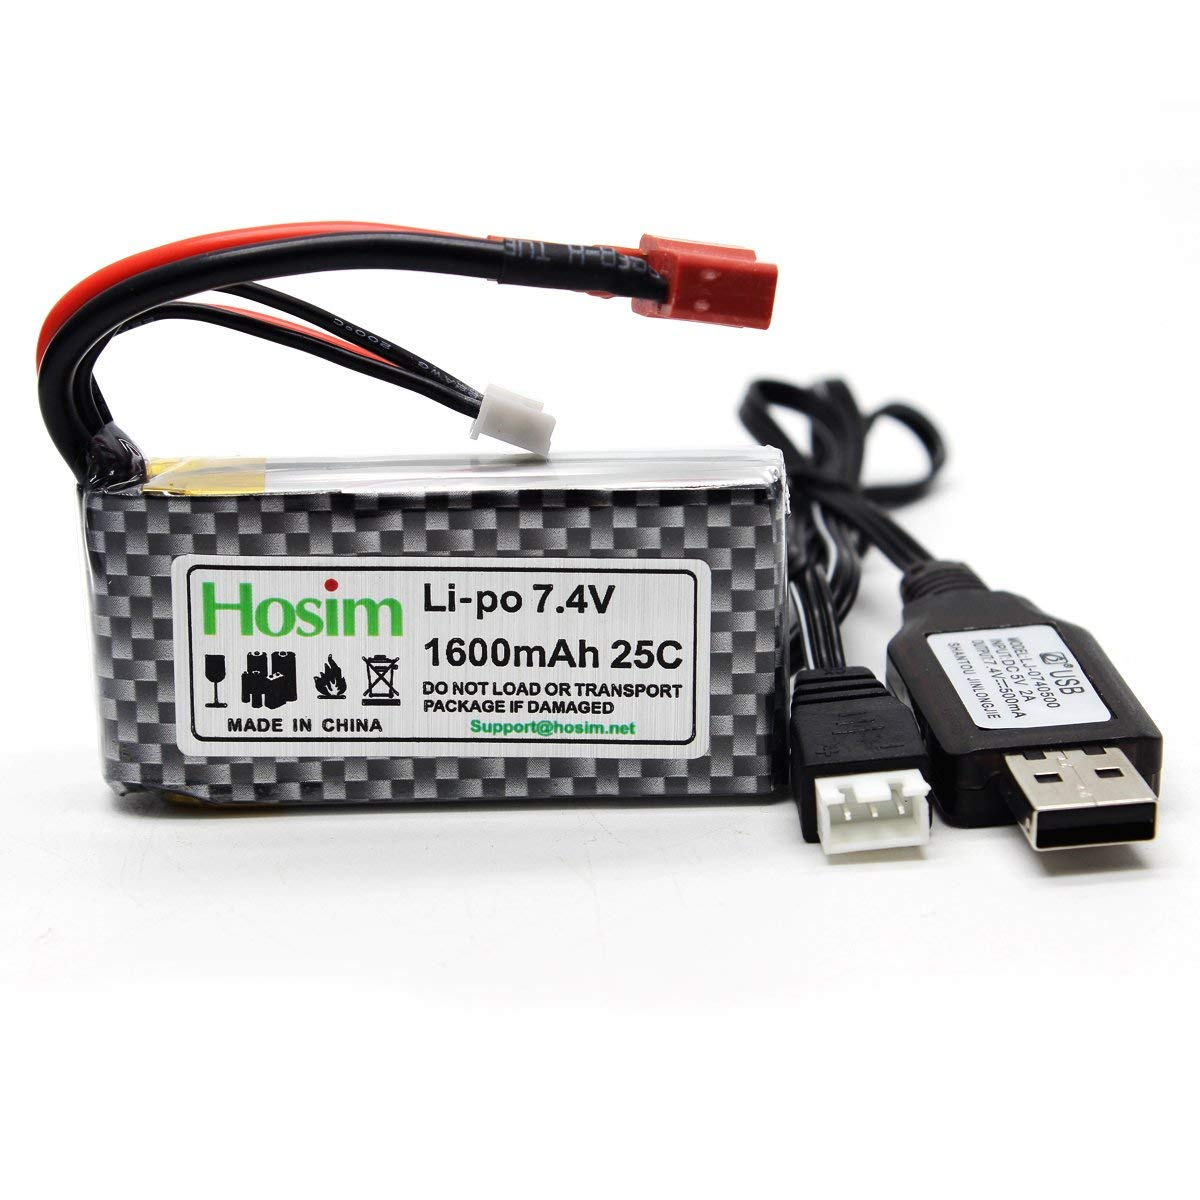 Hosim 7 4V 1600mAh RC Car Rechargeable Li-Po Battery and 1 pcs USB Charger,  Spare Replacement Parts Assessory for 9125 1/10 Scale All Terrain RC Truck